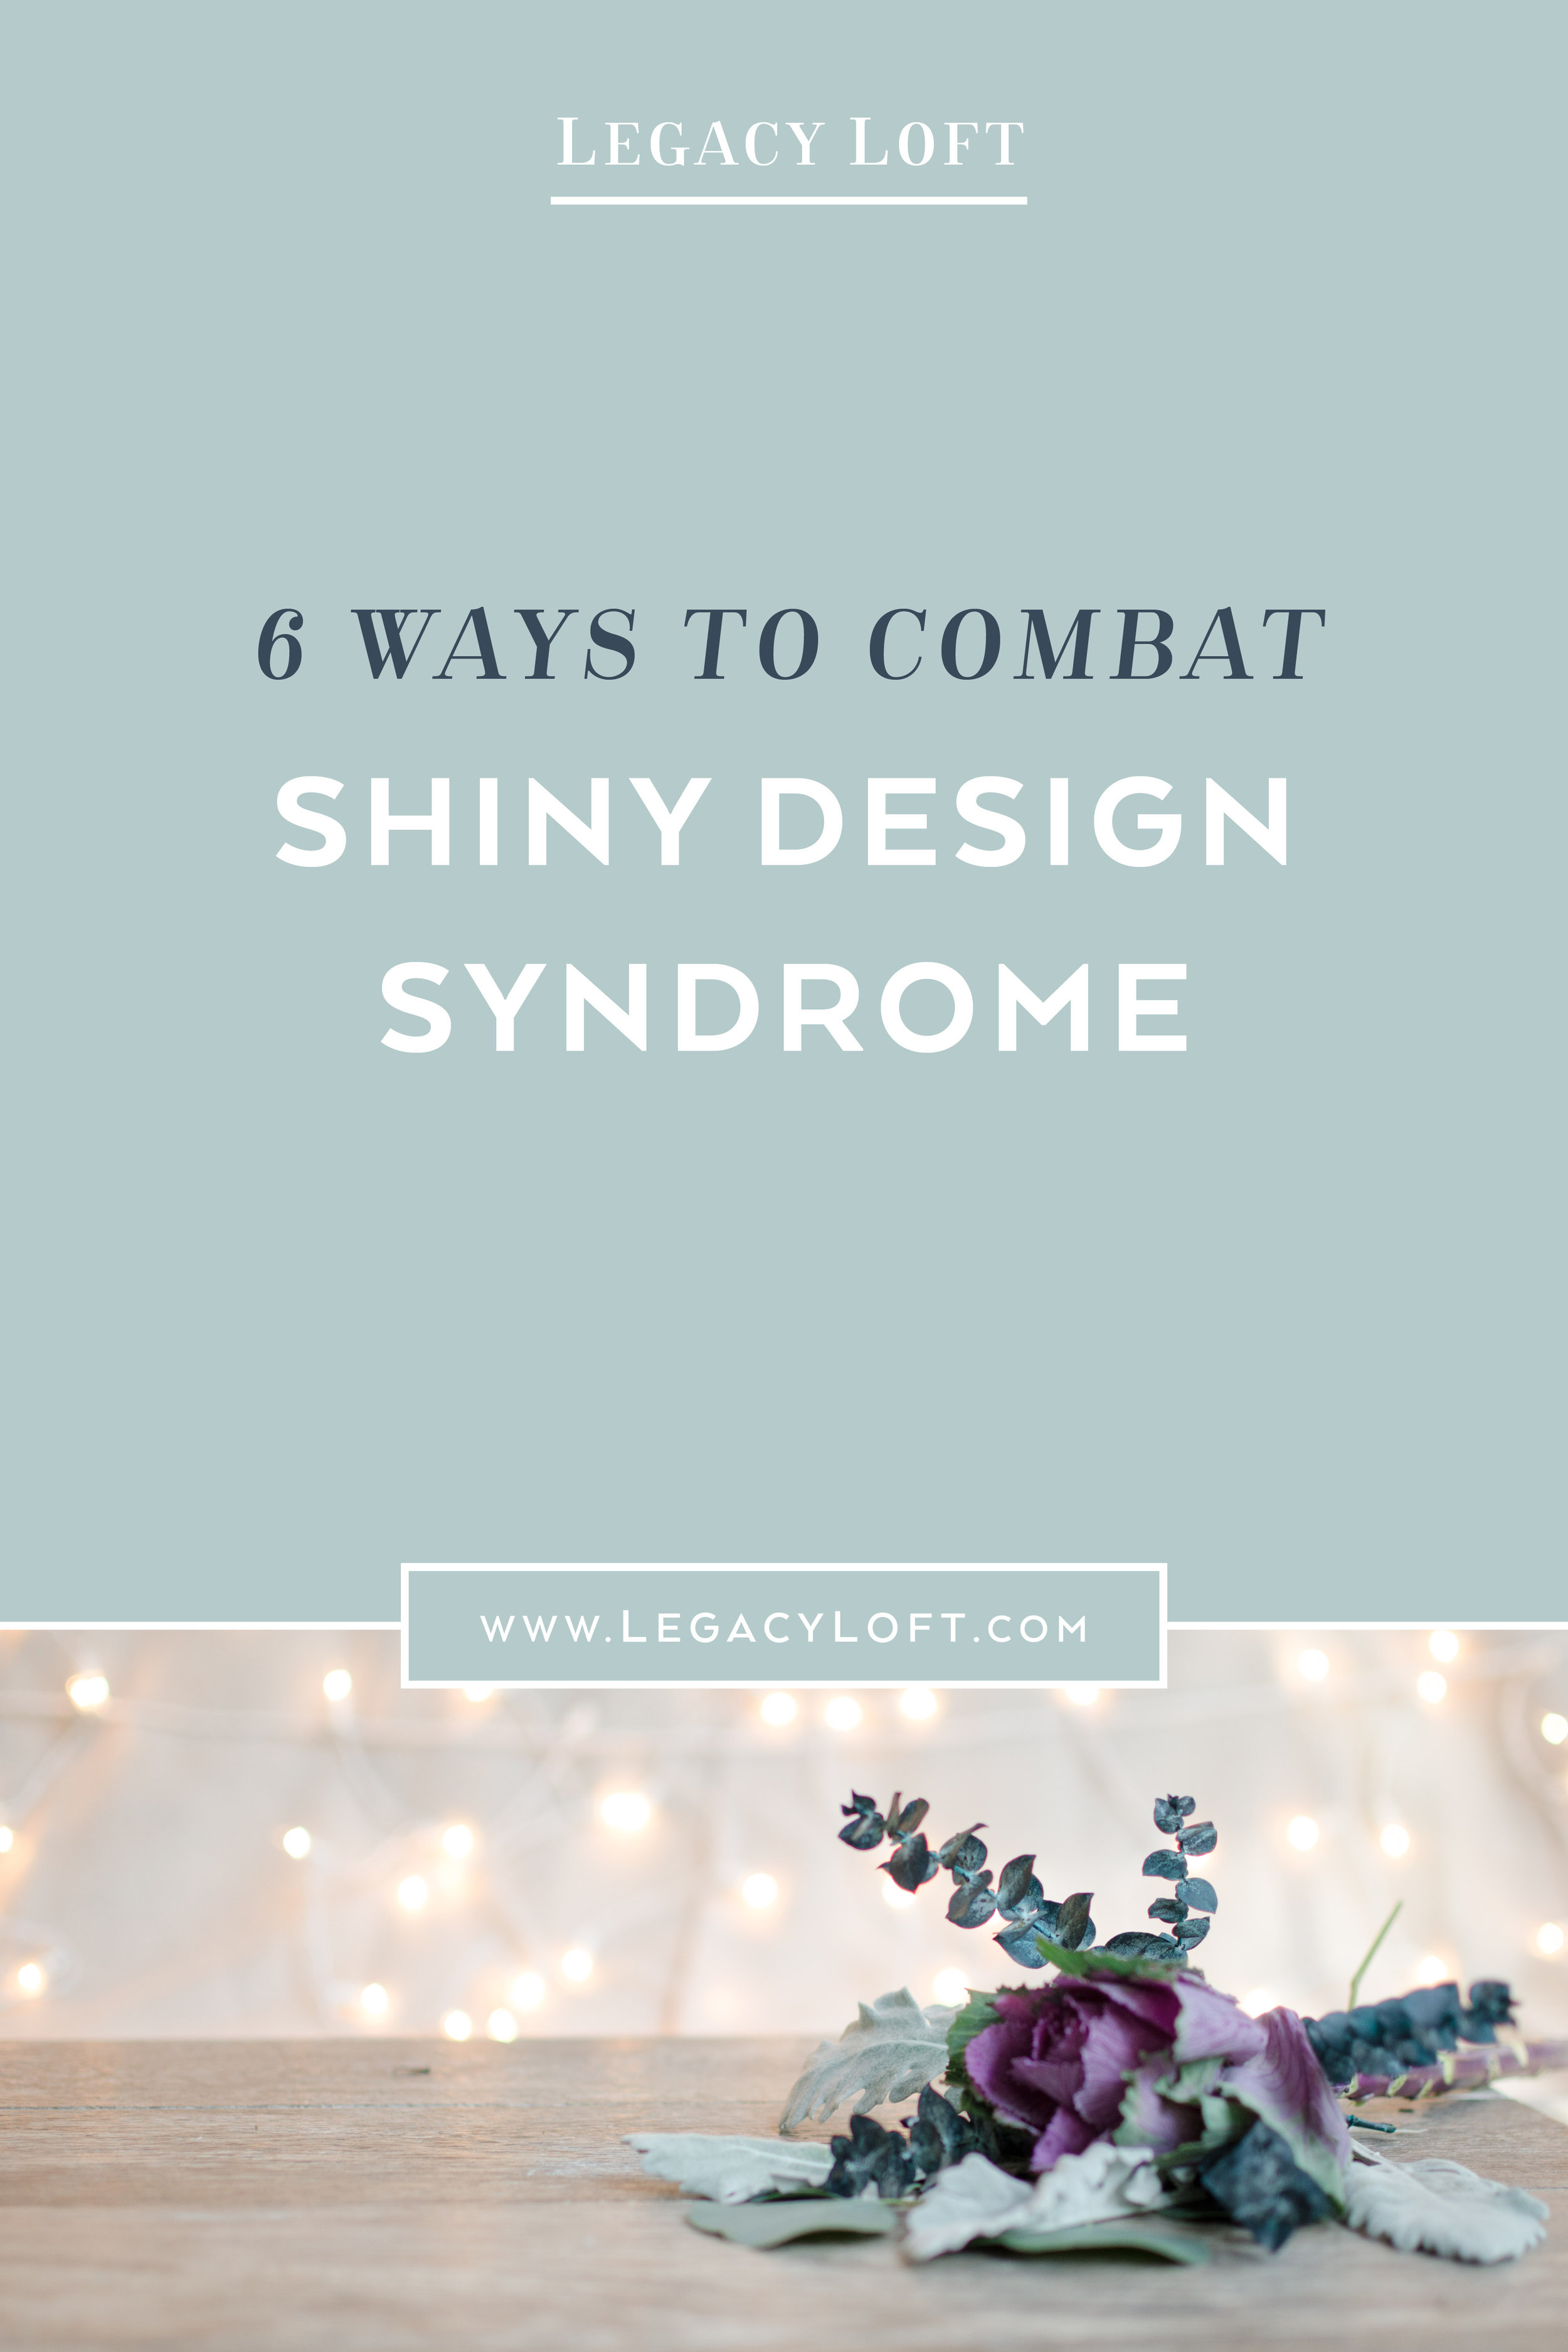 How to Combat Shiny Design Syndrome